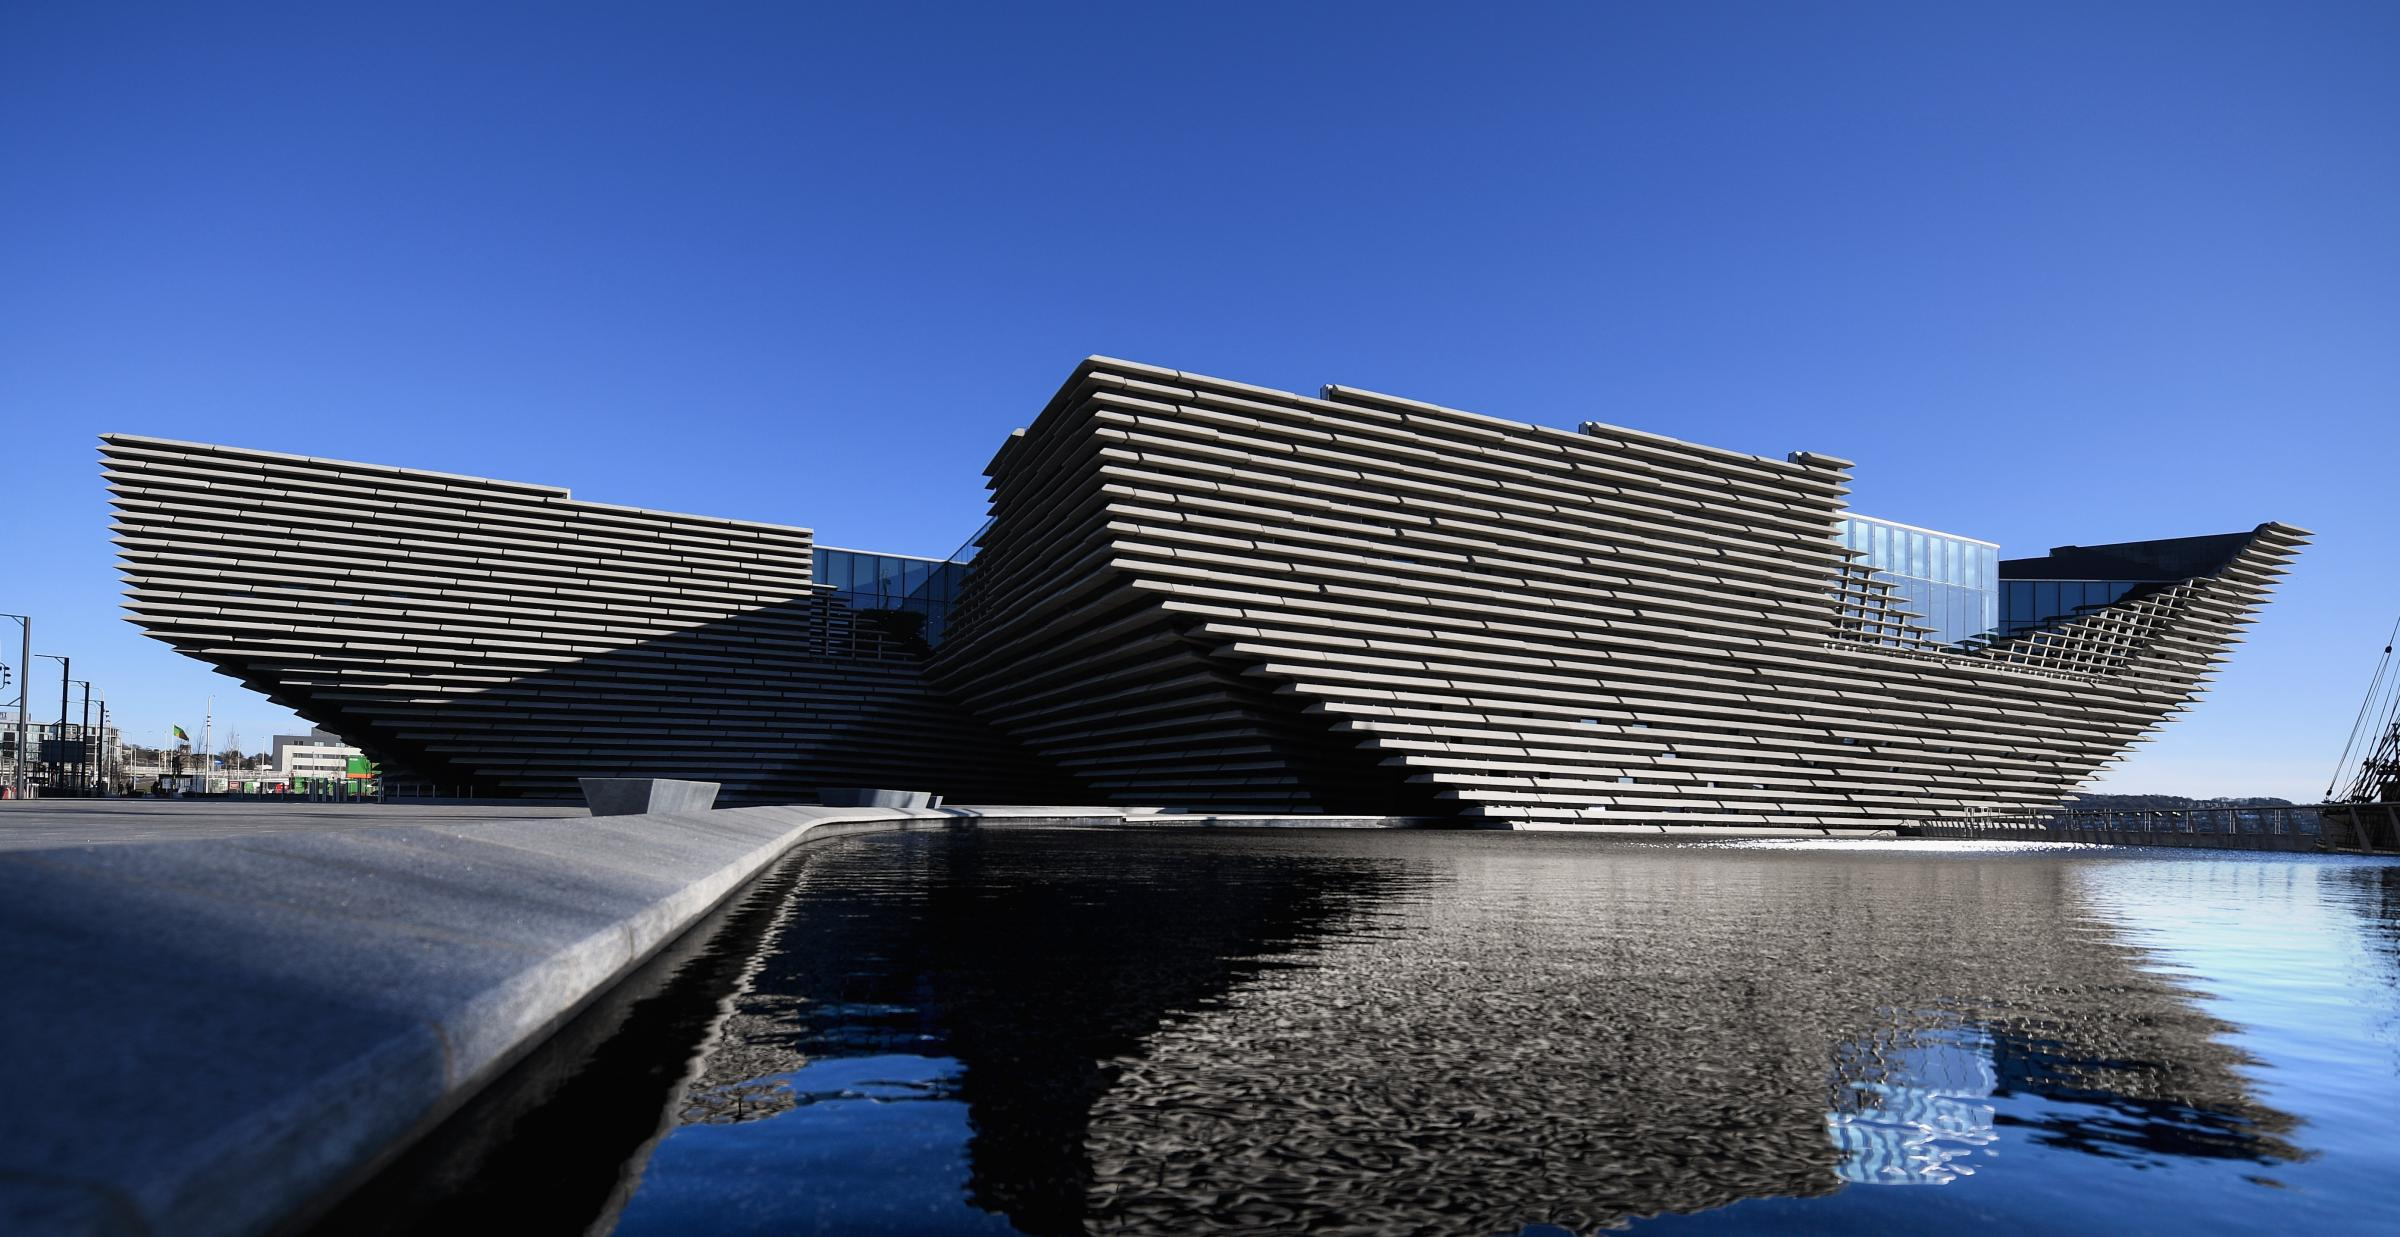 The V&A design museum in Dundee